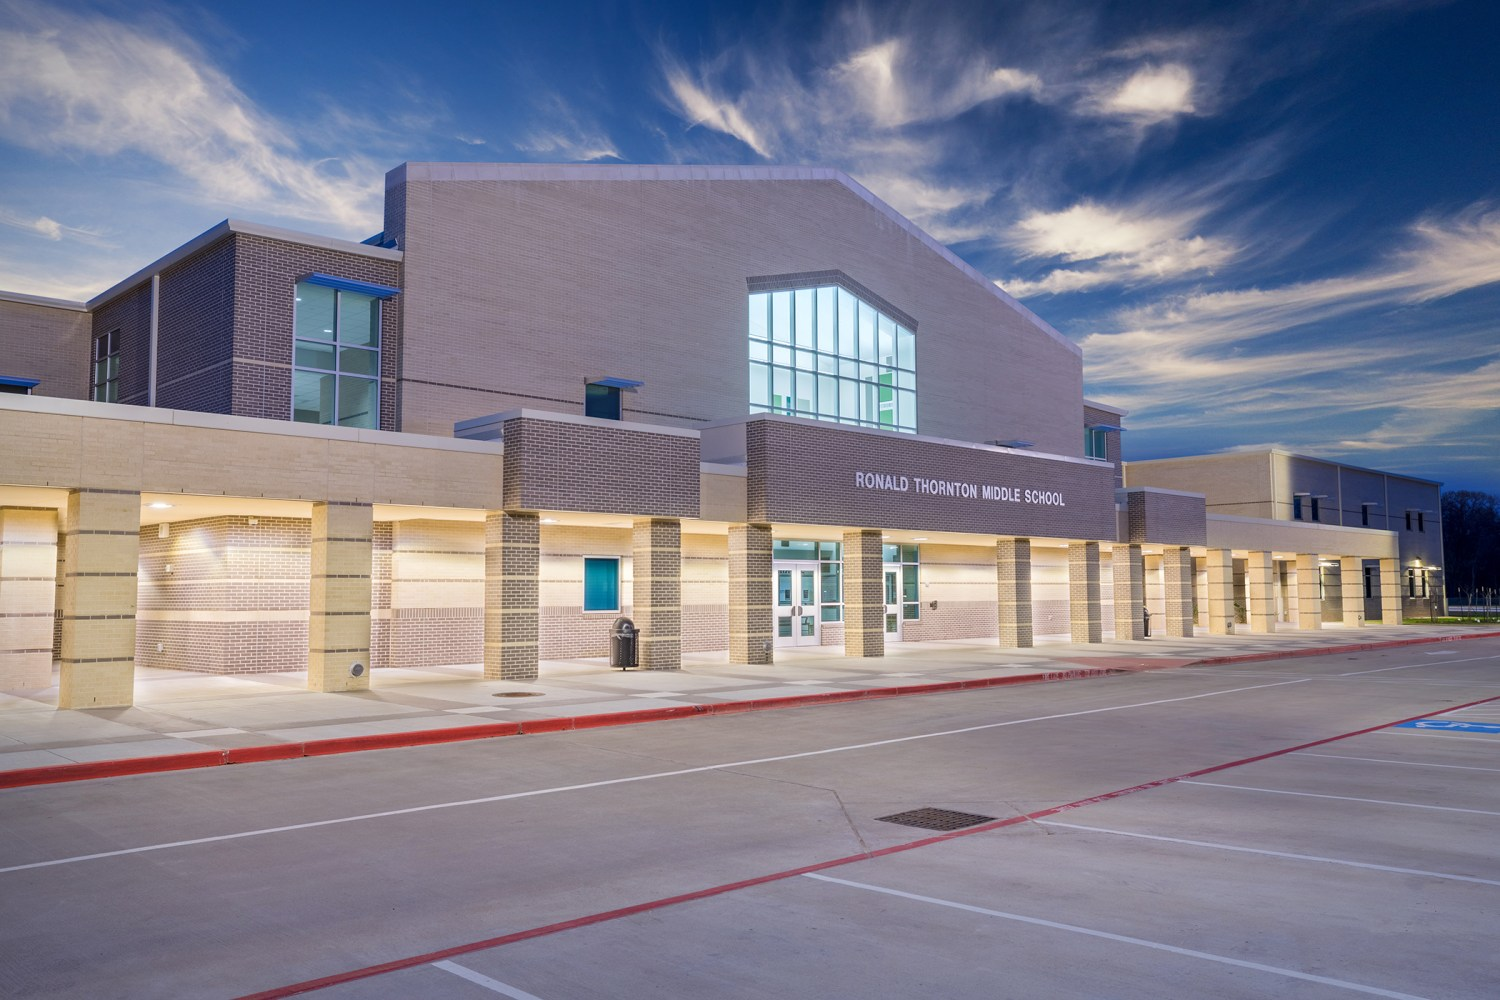 Ronald Thornton Middle School - Front entrance